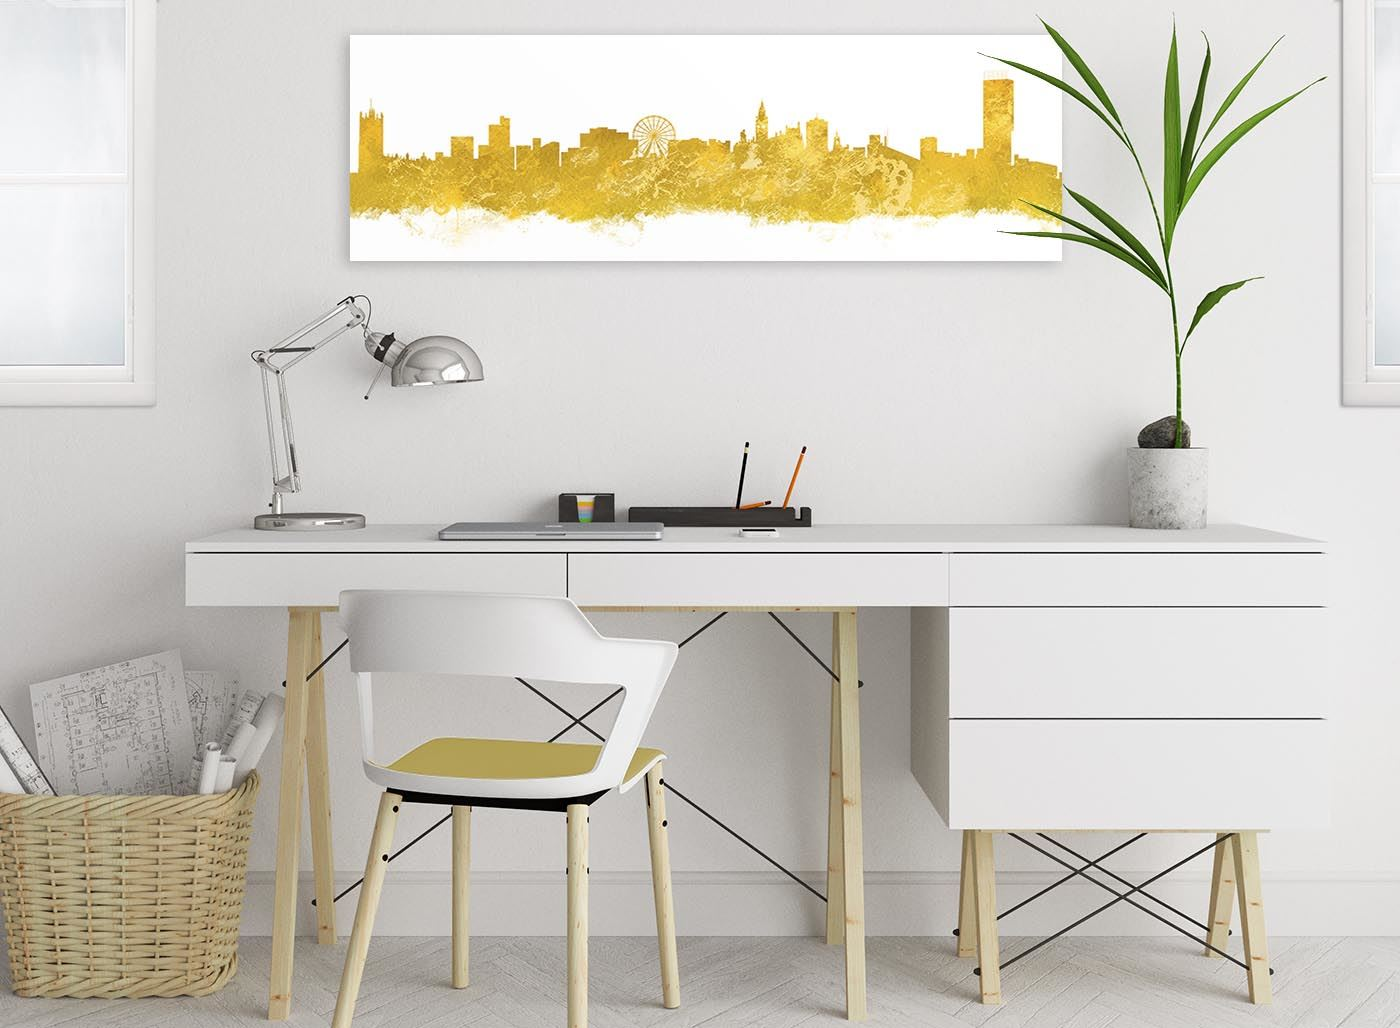 94cm wide Manchester Skyline Canvas Wall Art Print 17 Colours Available